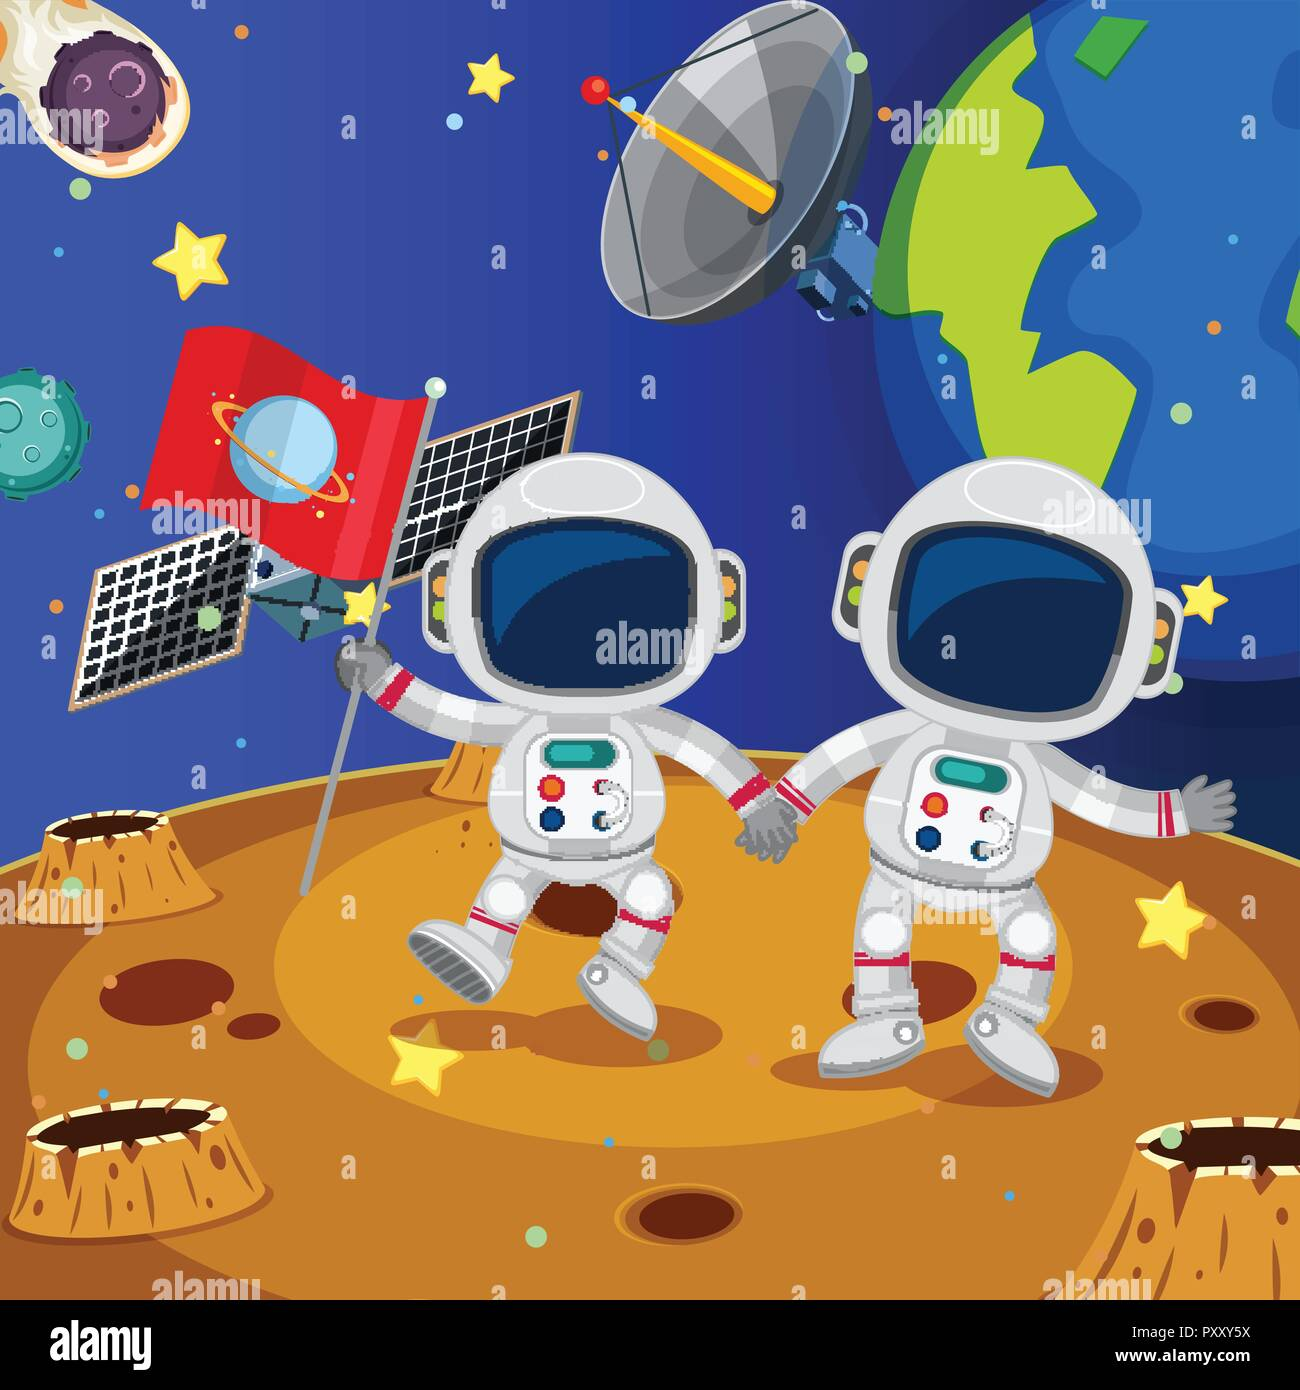 Two astronauts exploring the planet illustration - Stock Vector